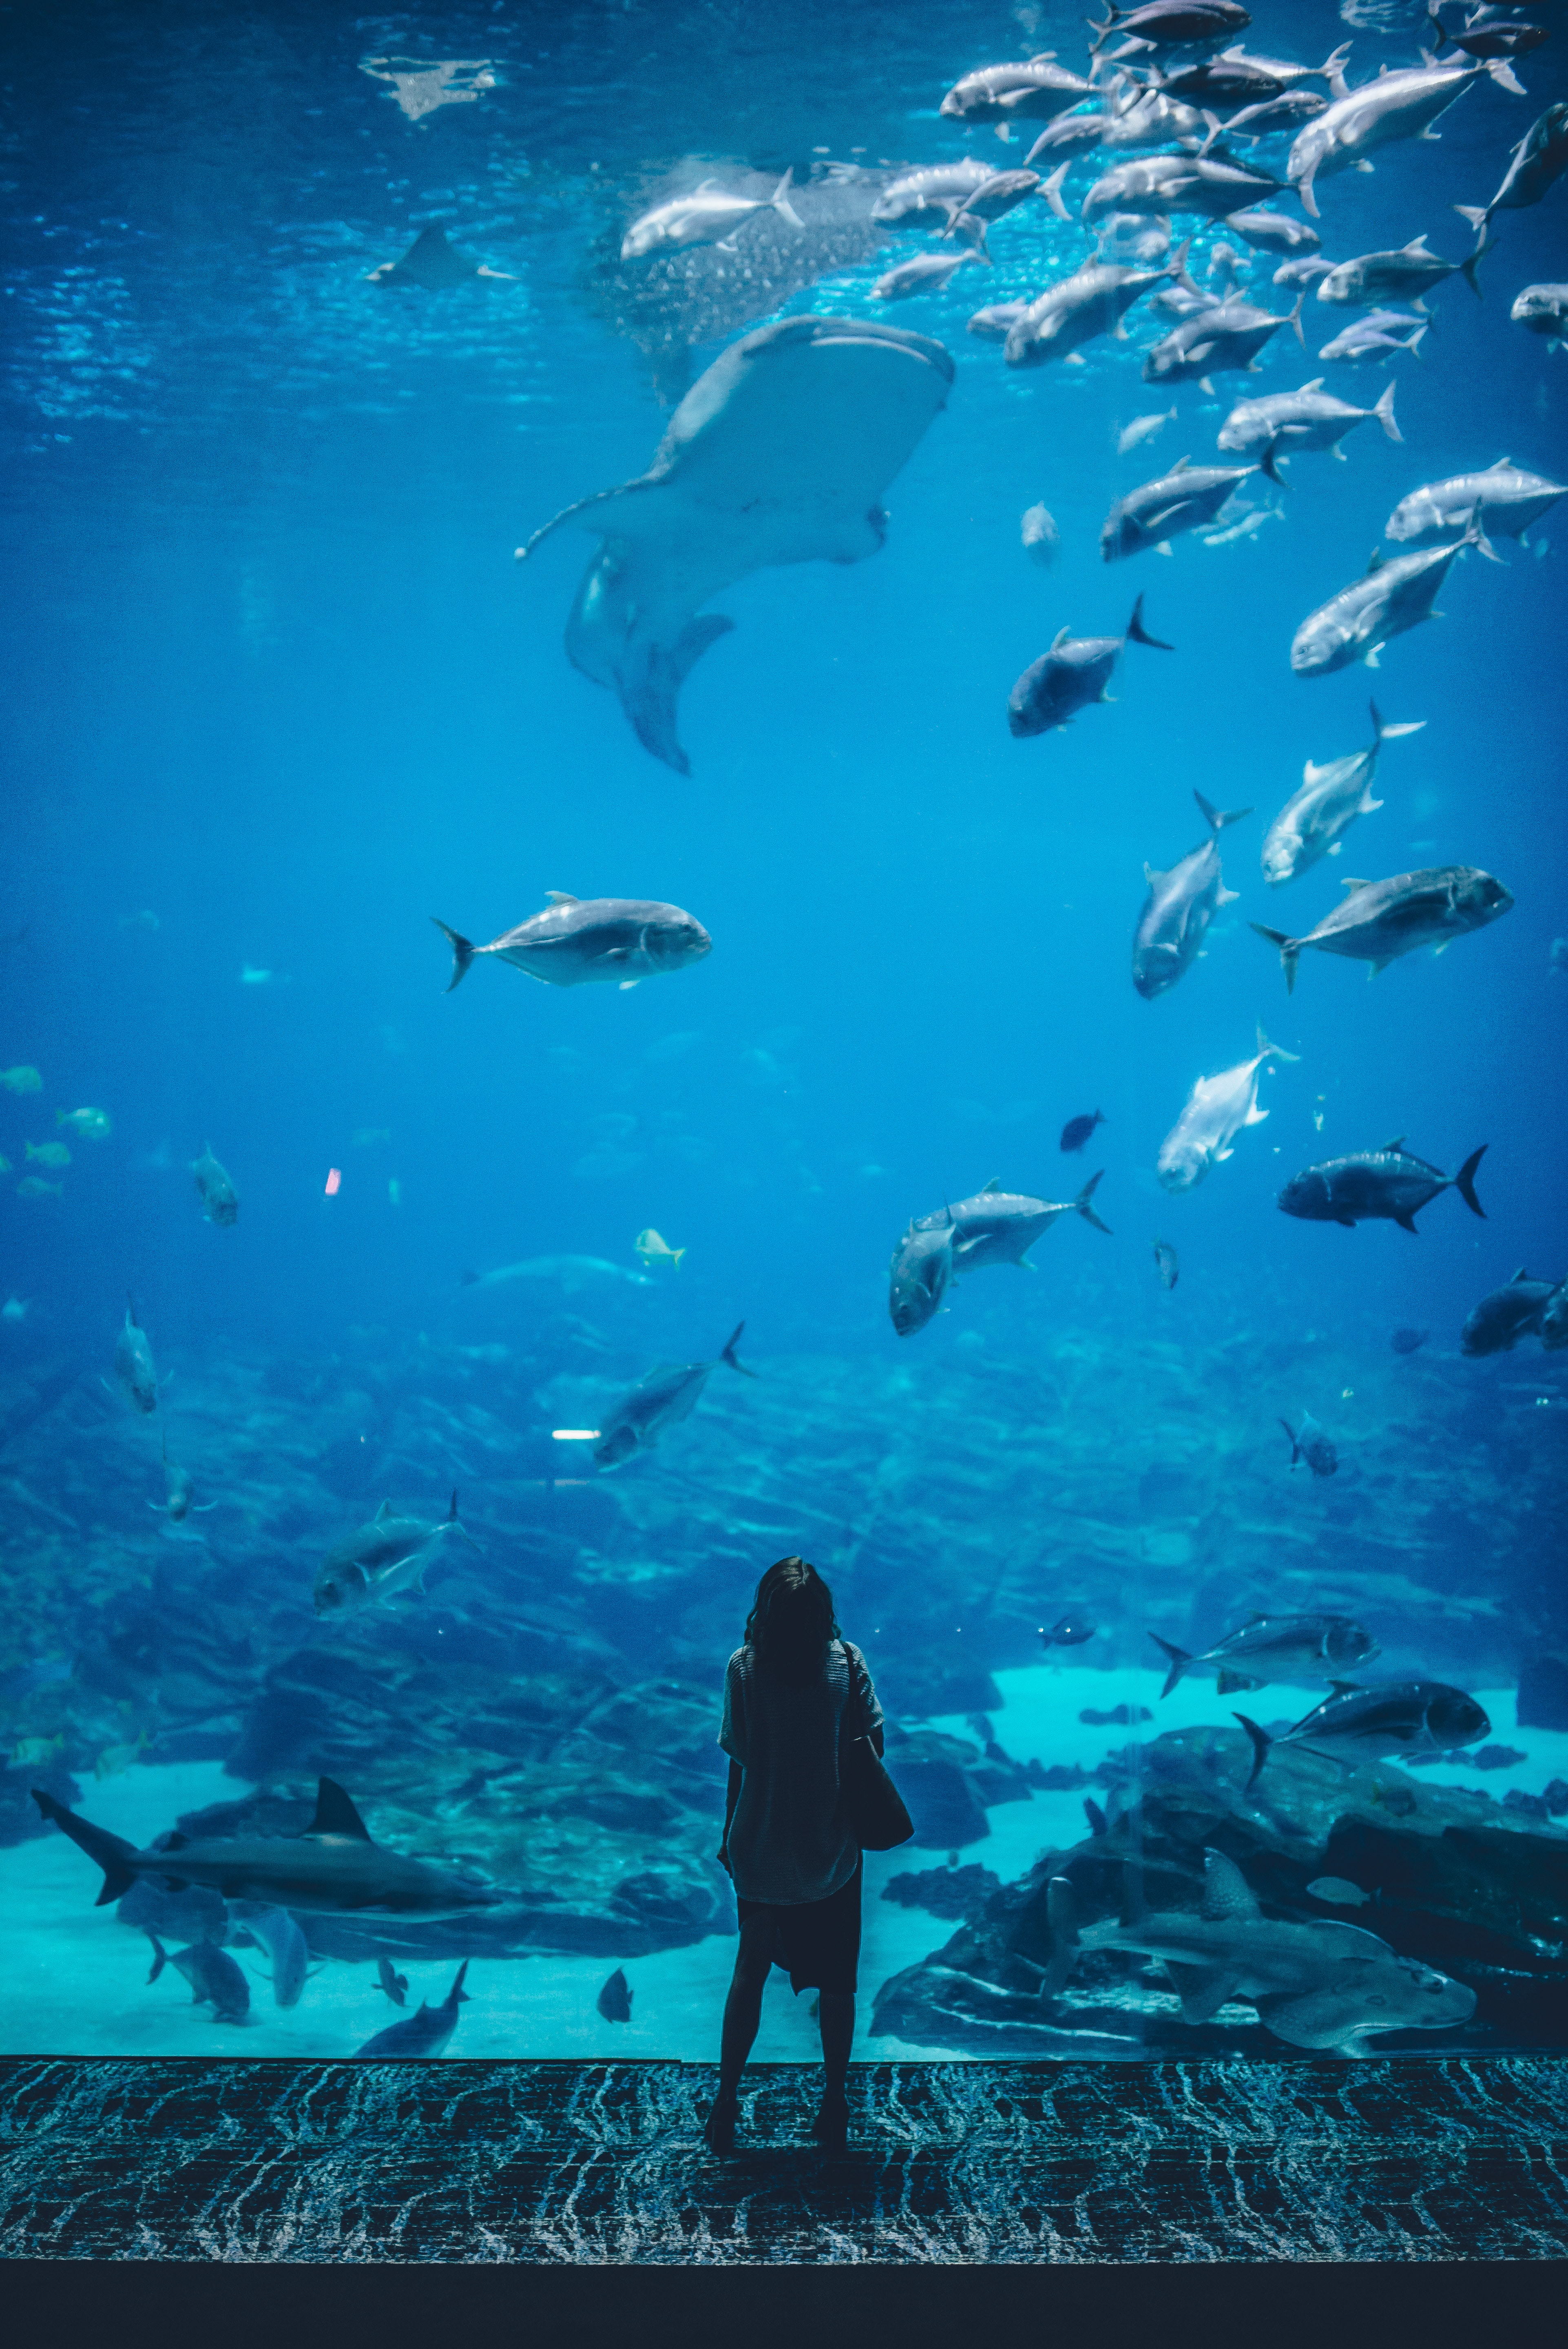 woman standing infront of aquarium with shoal of fish